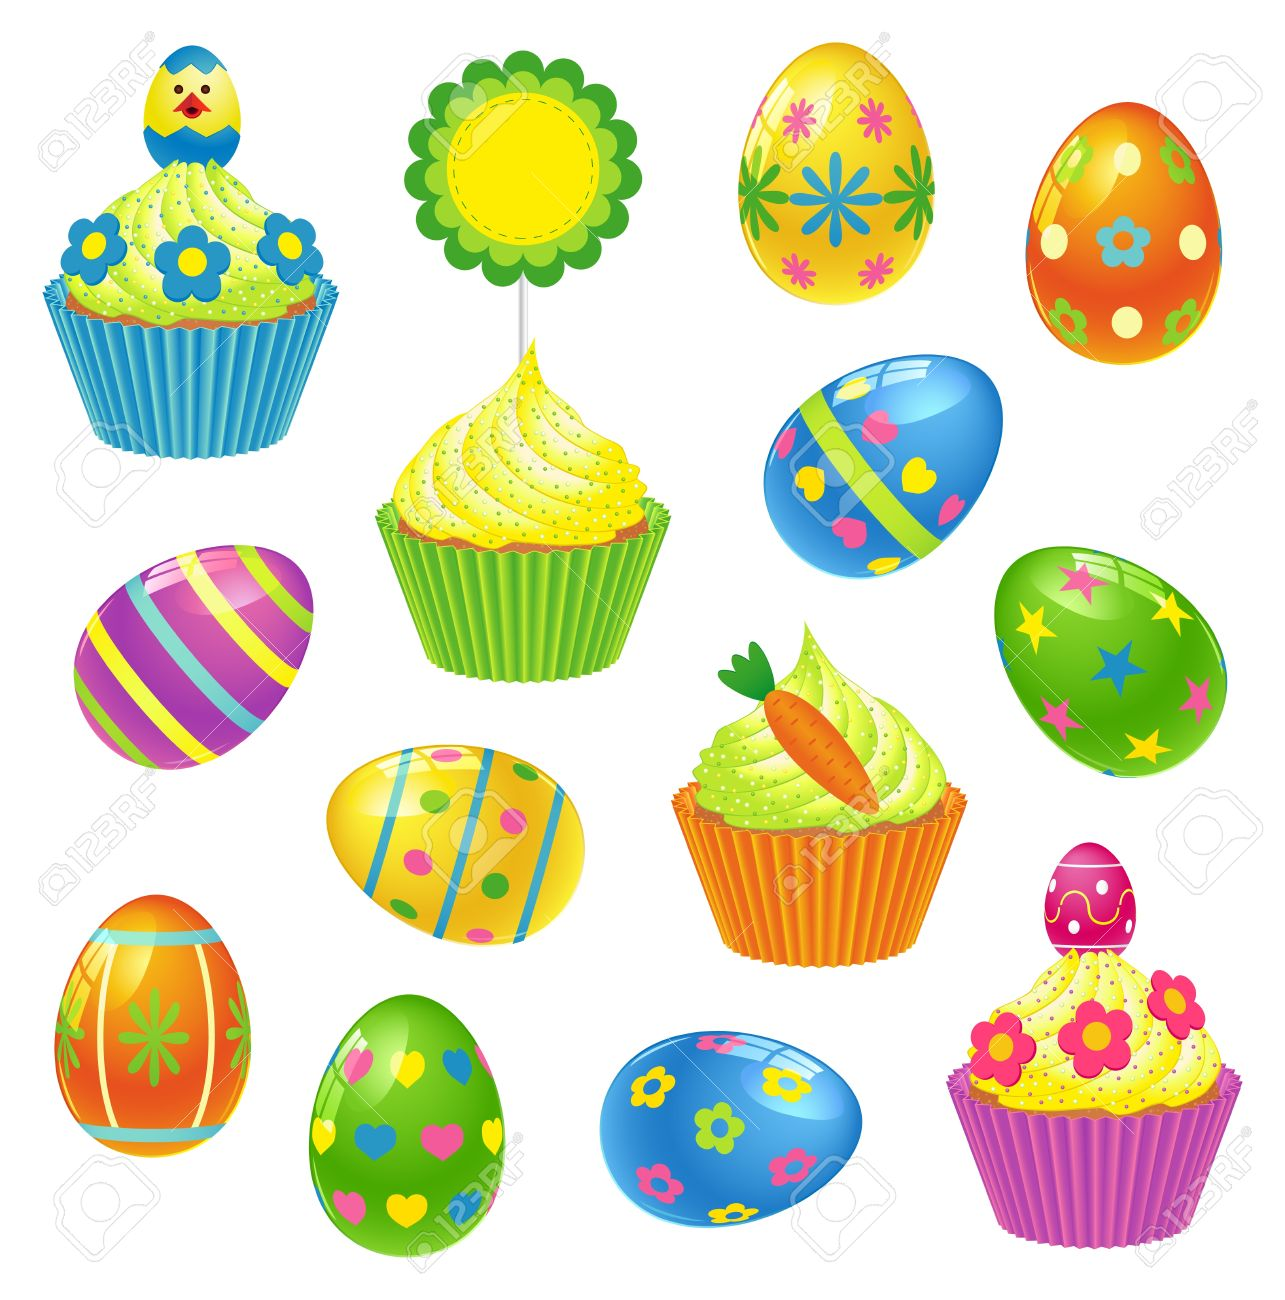 Easter cake free clipart.